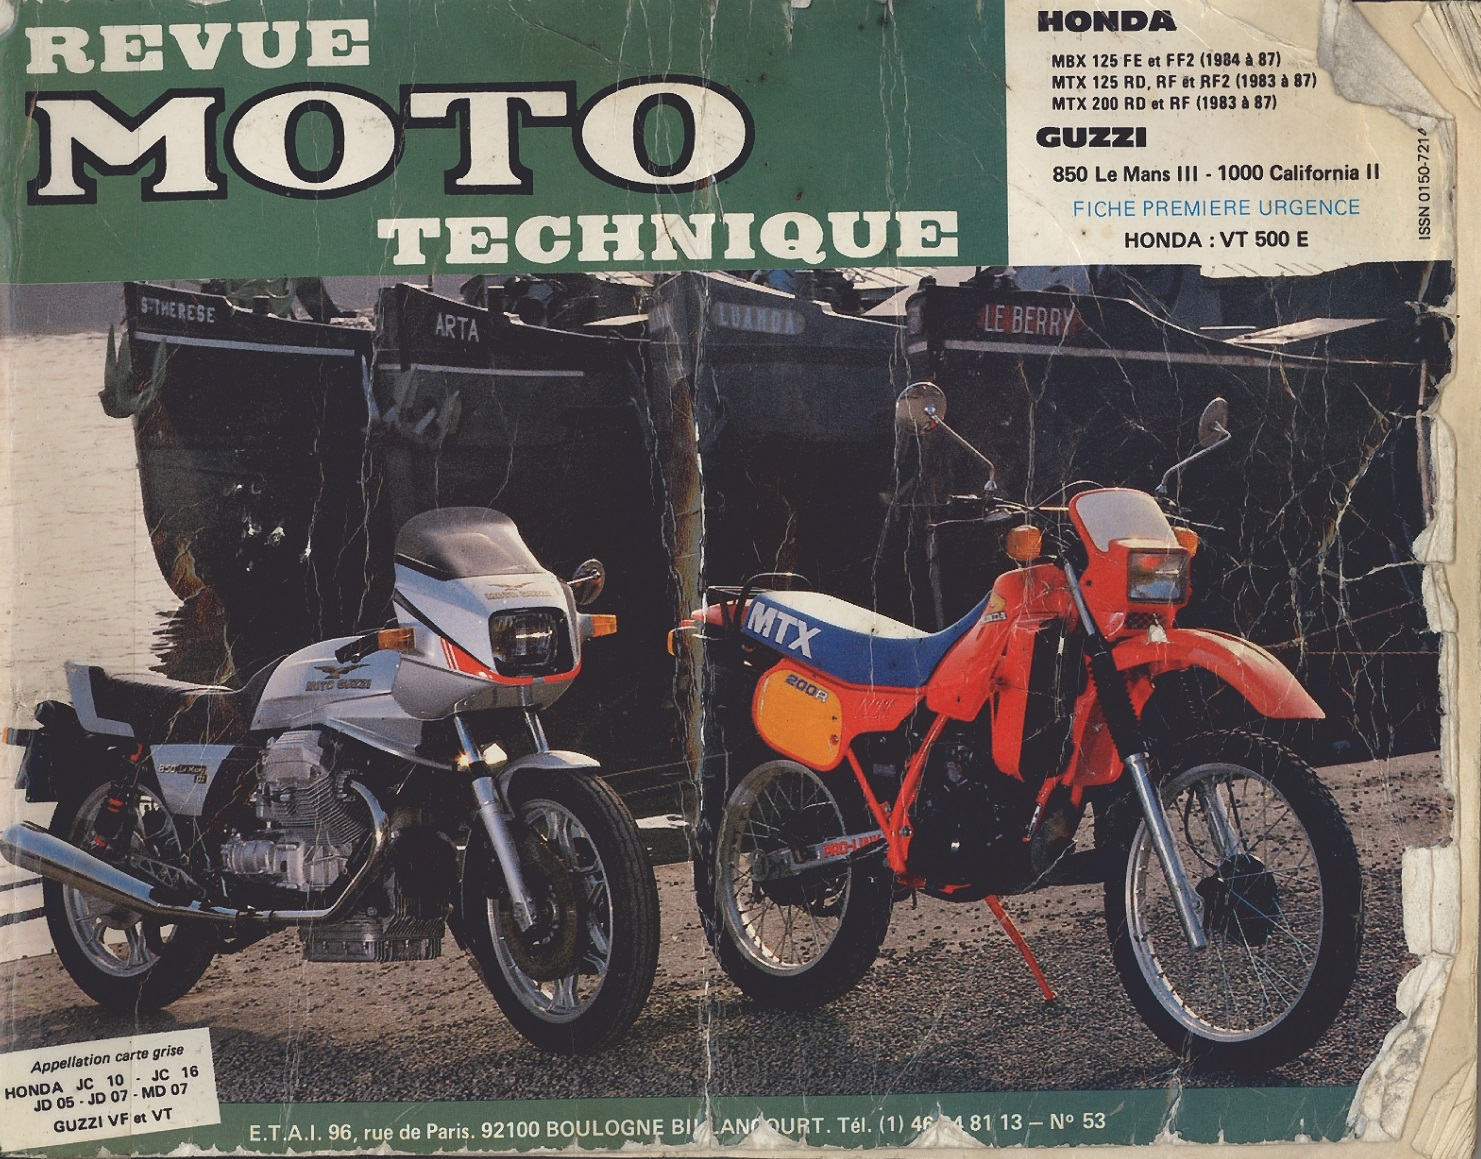 Workshop Manual for Honda MBX125FE (1984-1987)